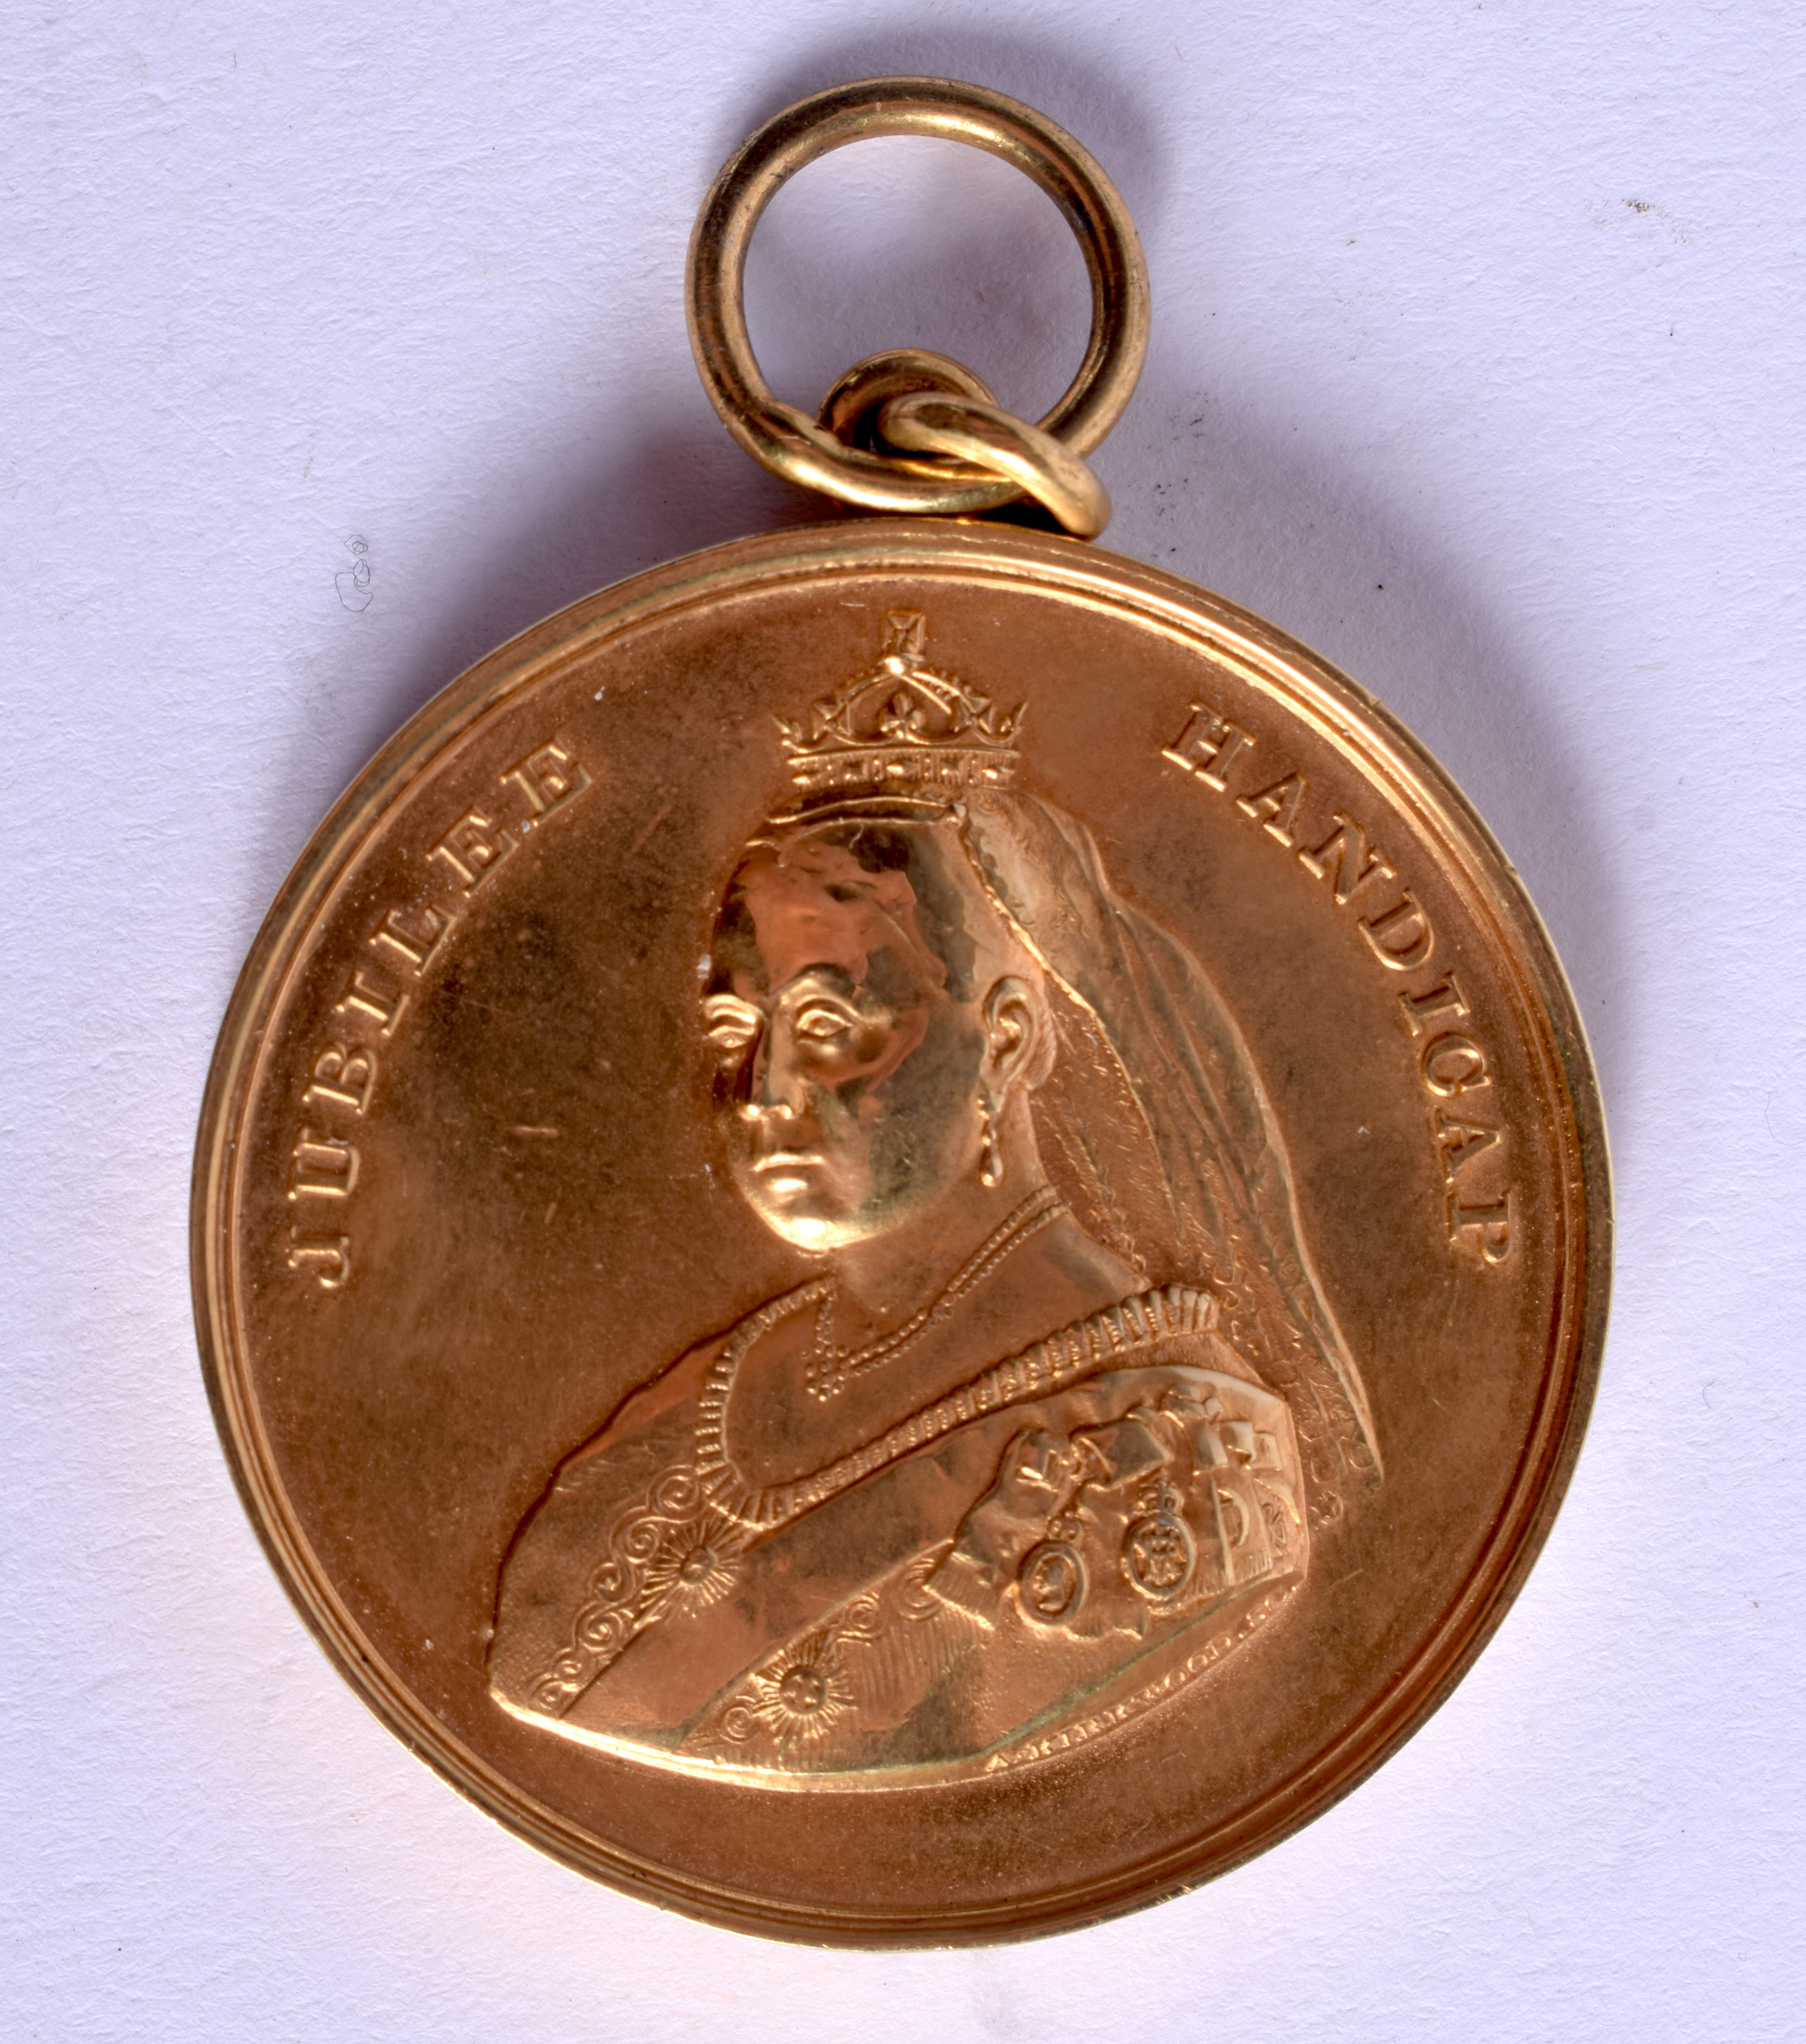 A RARE 19TH CENTURY SCOTTISH ST ANDREWS YELLOW METAL MEDALLION made for the Jubilee Handicap. 36 gra